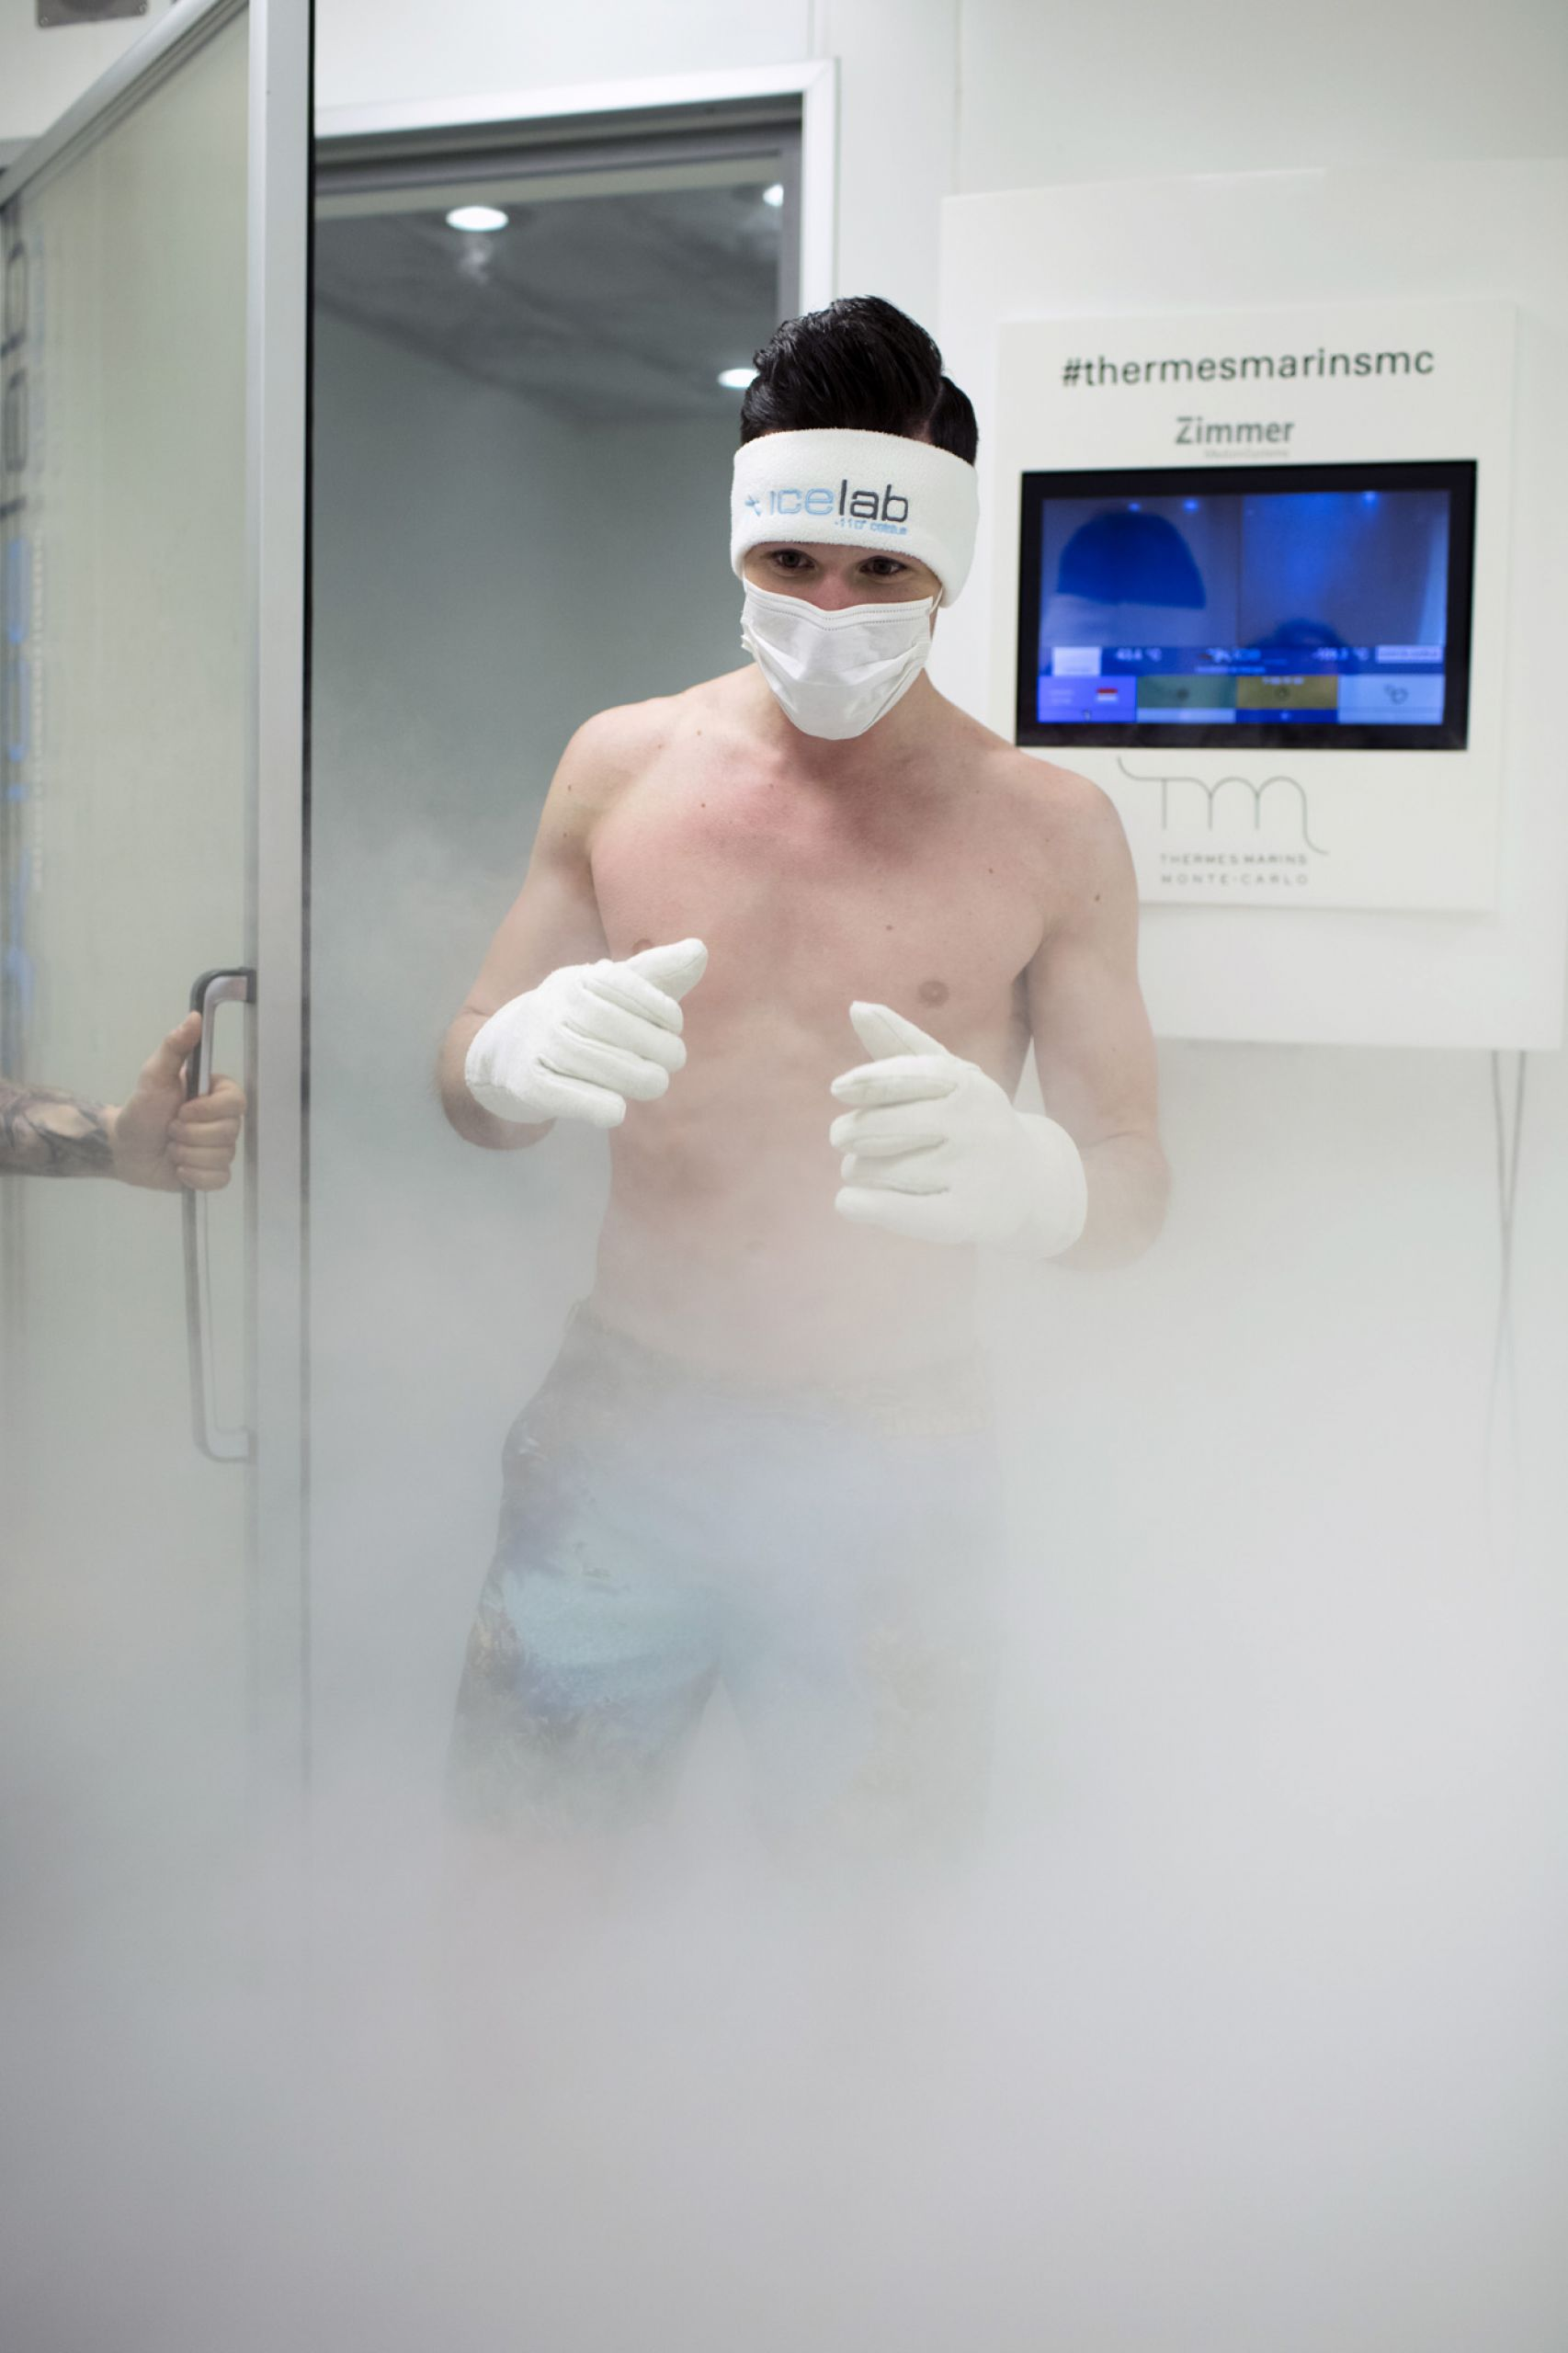 cryotherapy monte carlo thermes marins